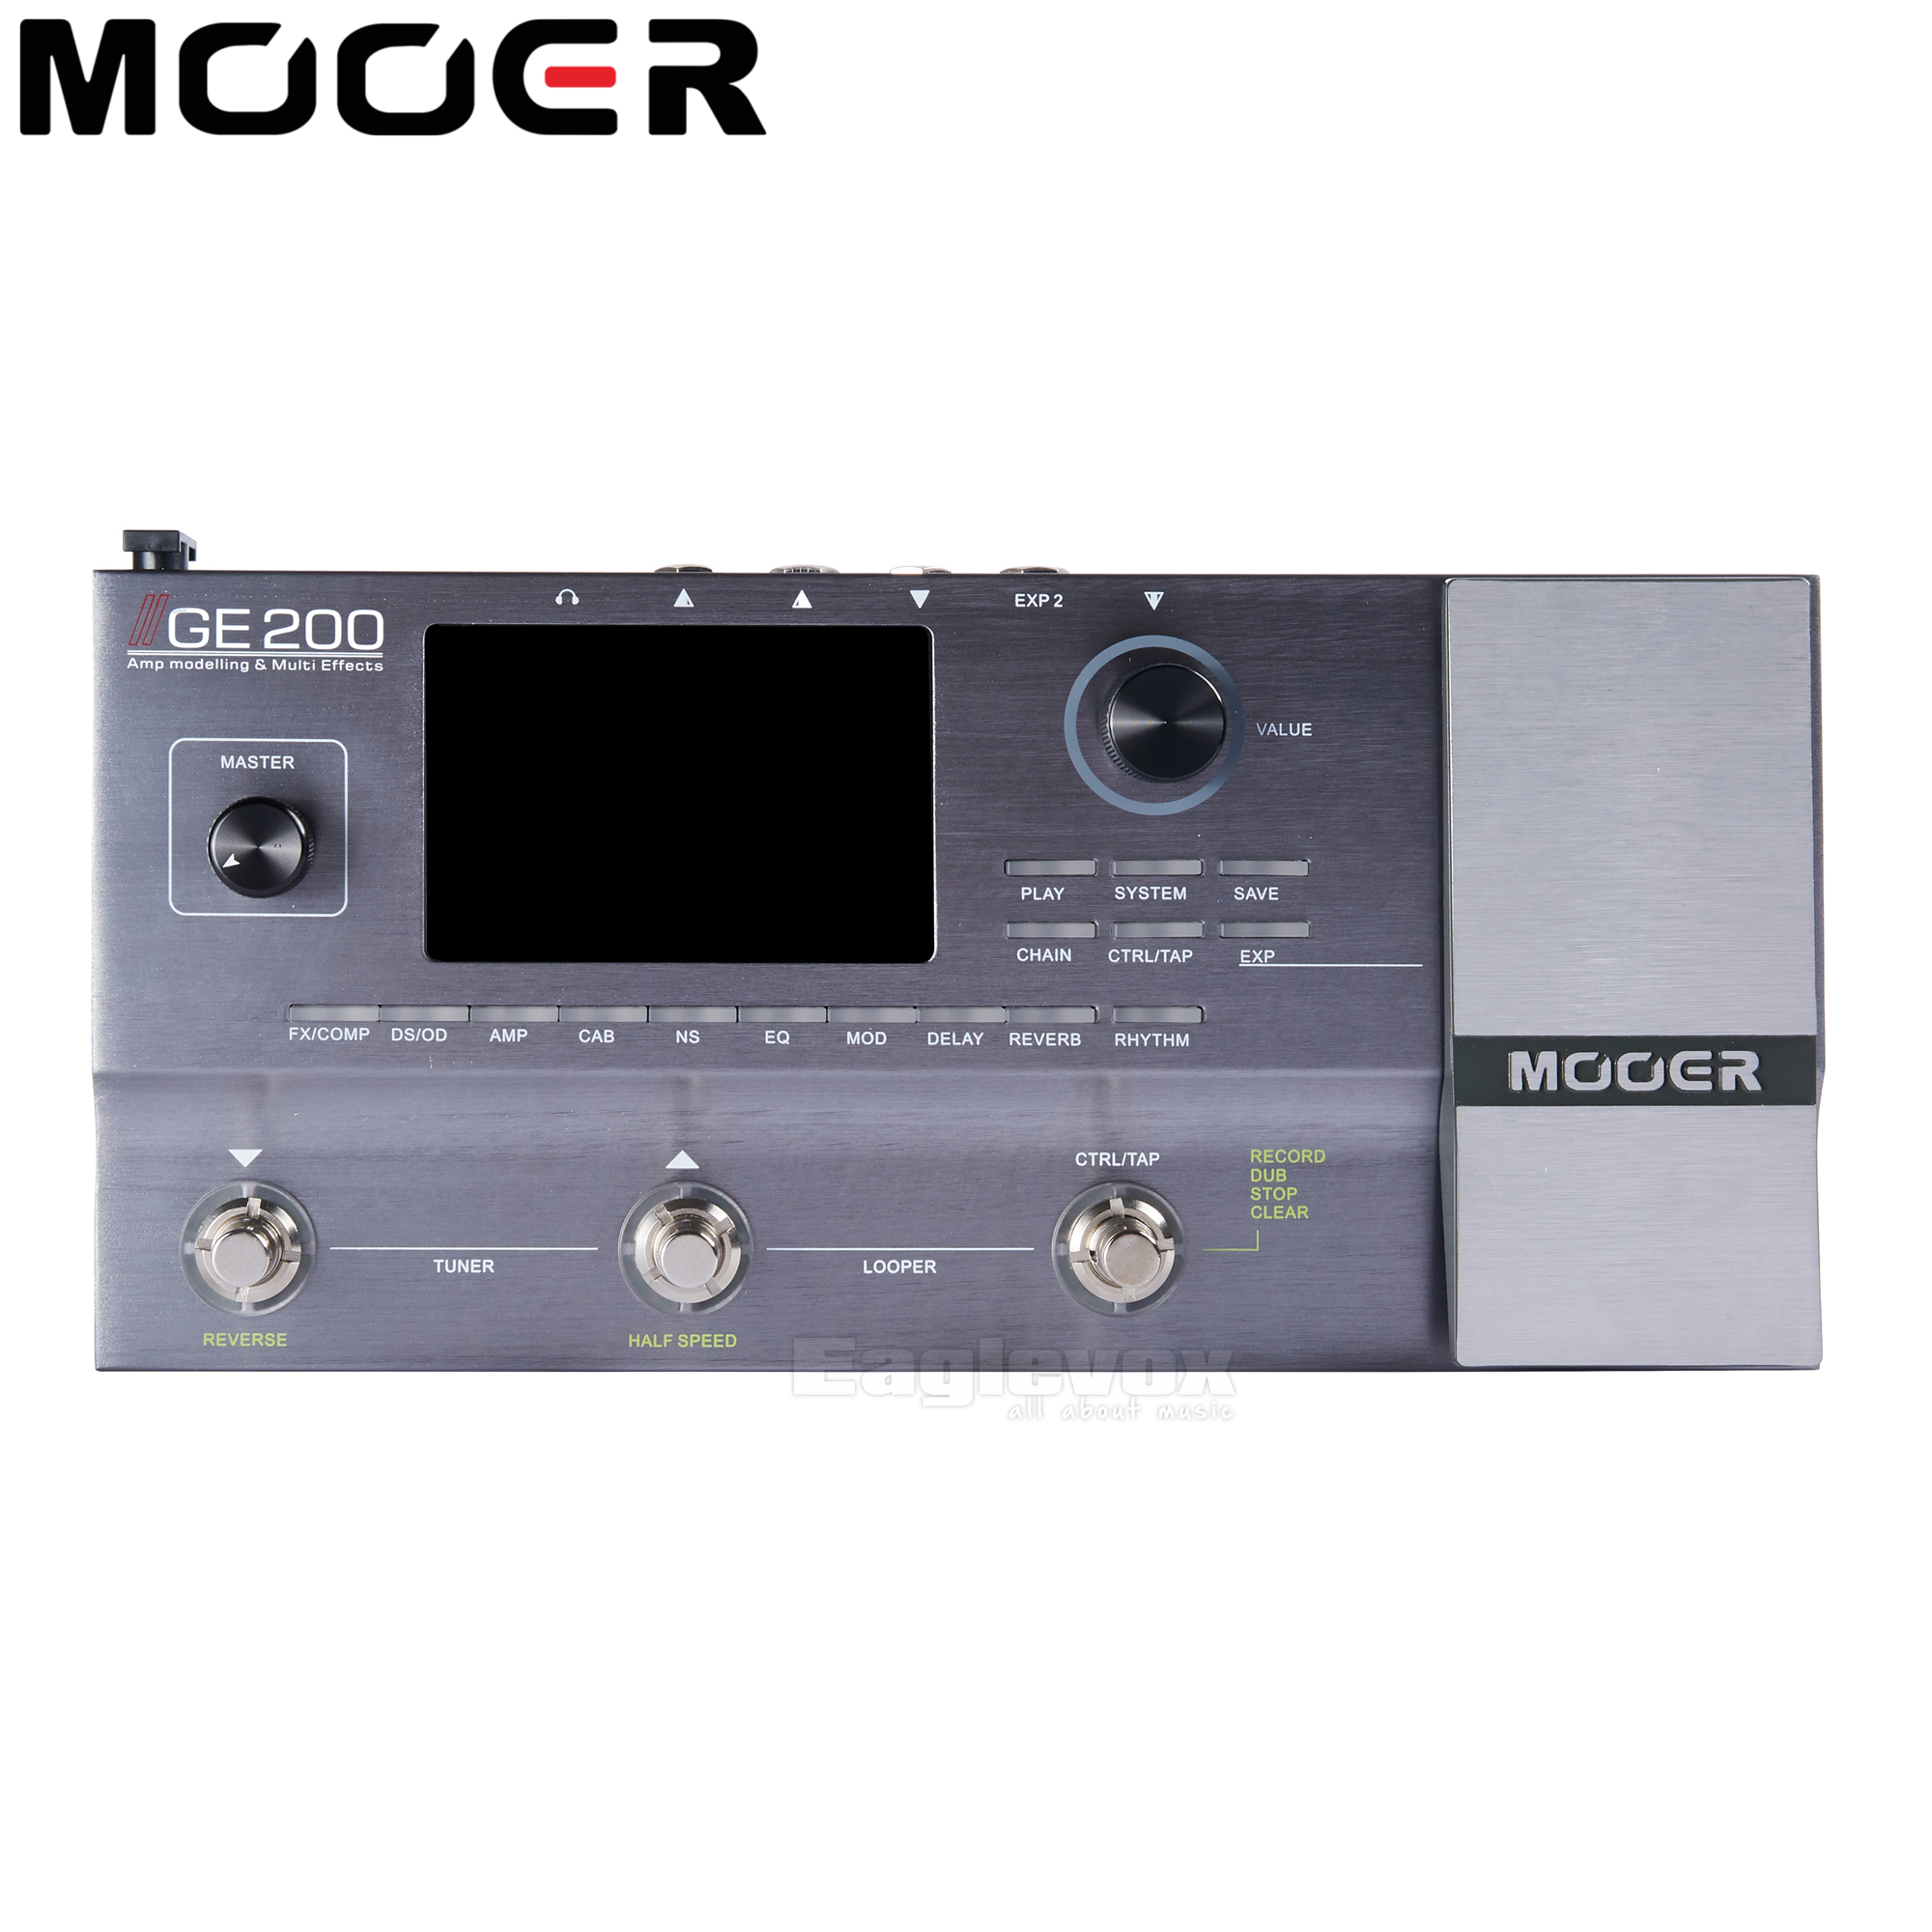 Mooer GE200 Multi Effects Processor Electric Guitar Effect Pedal Multi Effects  52 Second Looper 55 AMP Models Mooer GE200 кукла moxie эйвери с плавающим дельфином